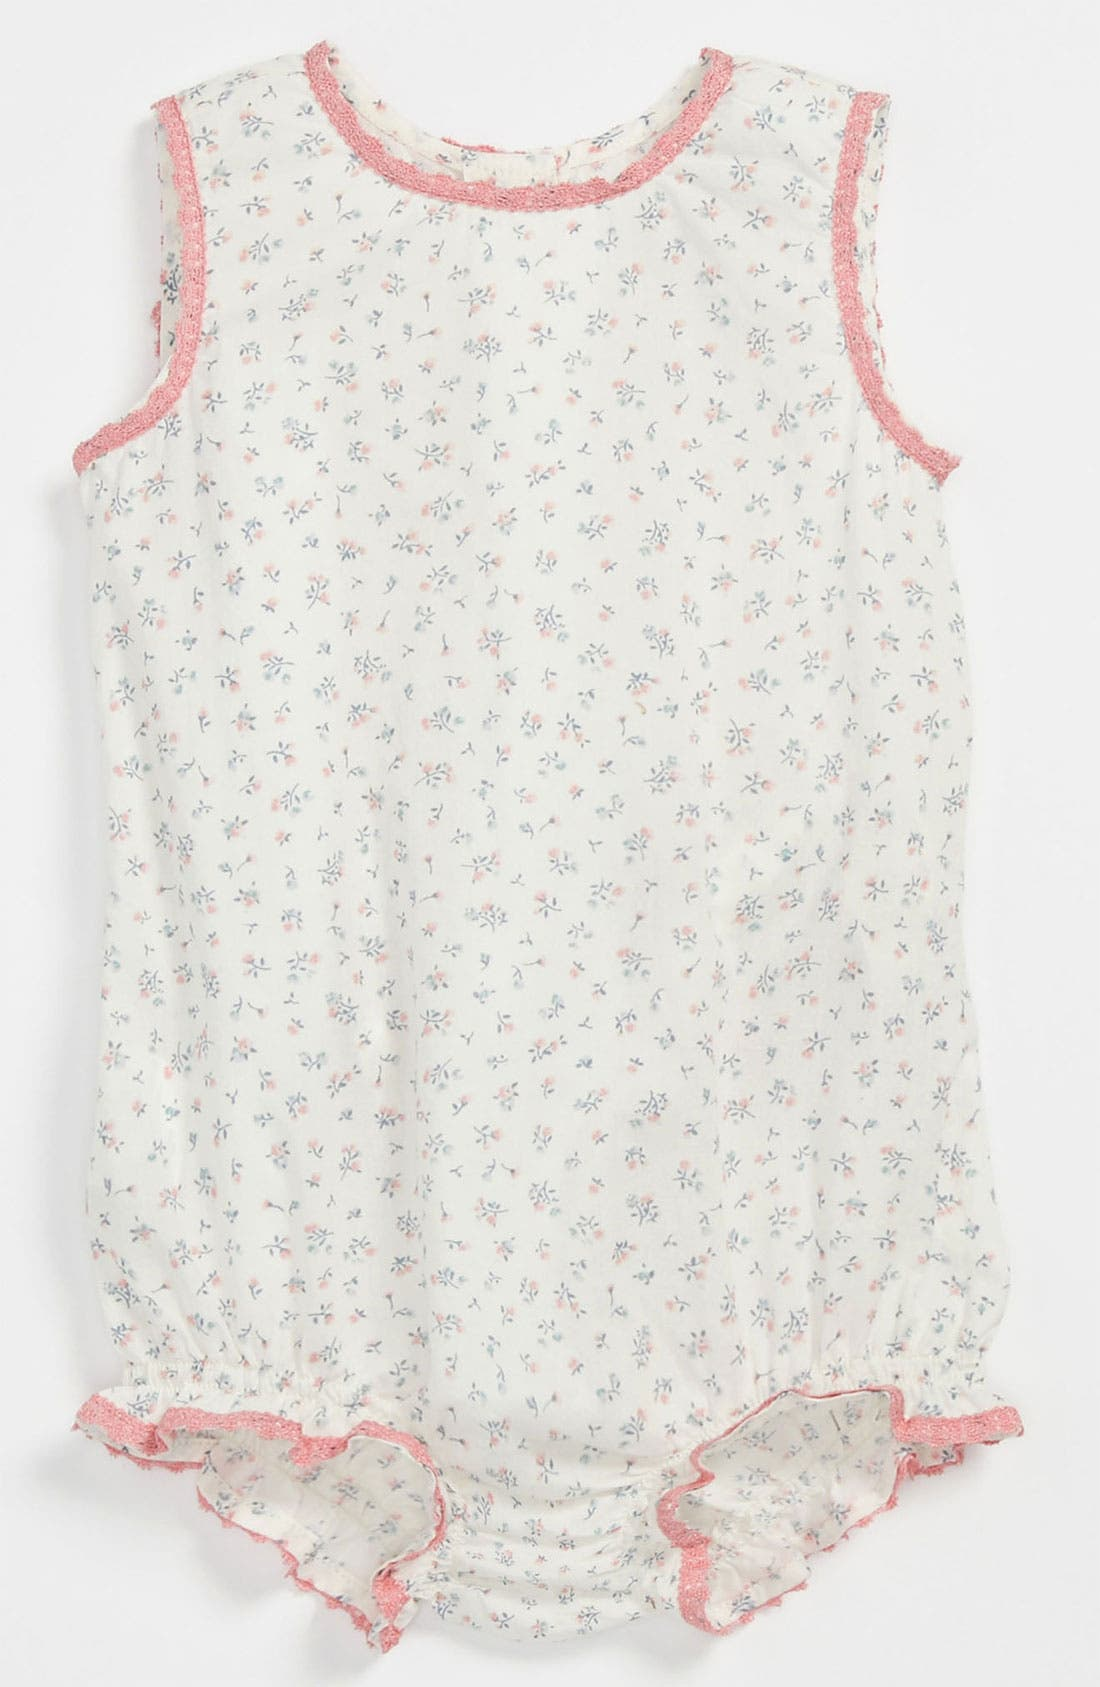 Main Image - United Colors of Benetton Kids Woven Bodysuit (Baby)